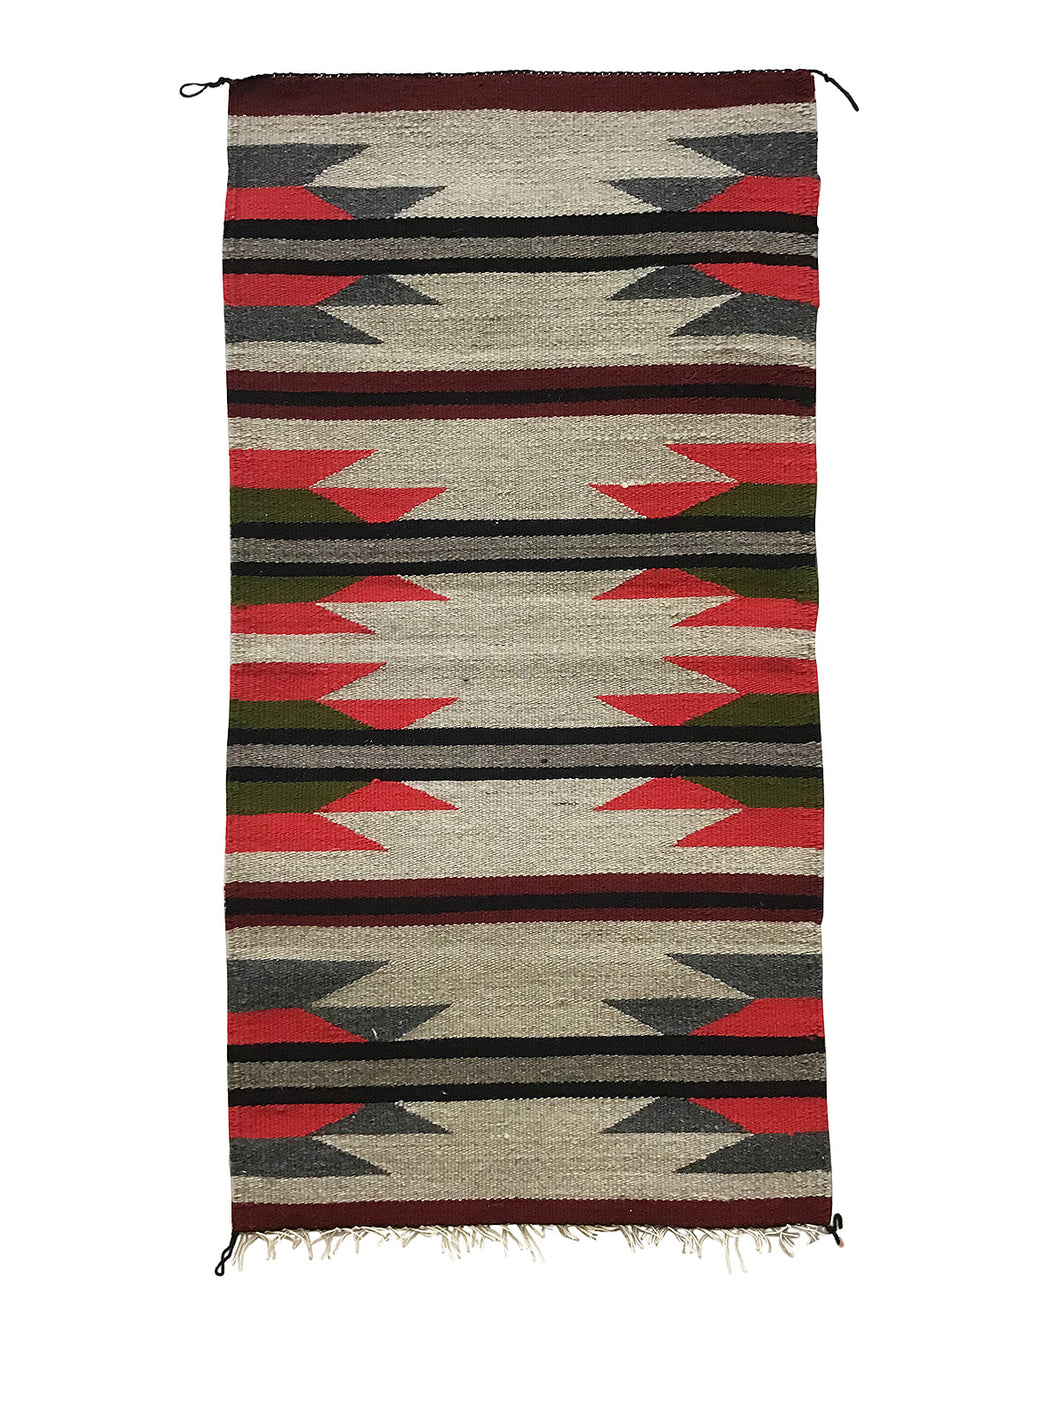 "Faye Peterson, Gallup Throw Rug, Navajo Handwoven, Wool, Cotton, 38 1/2"" x 20"""